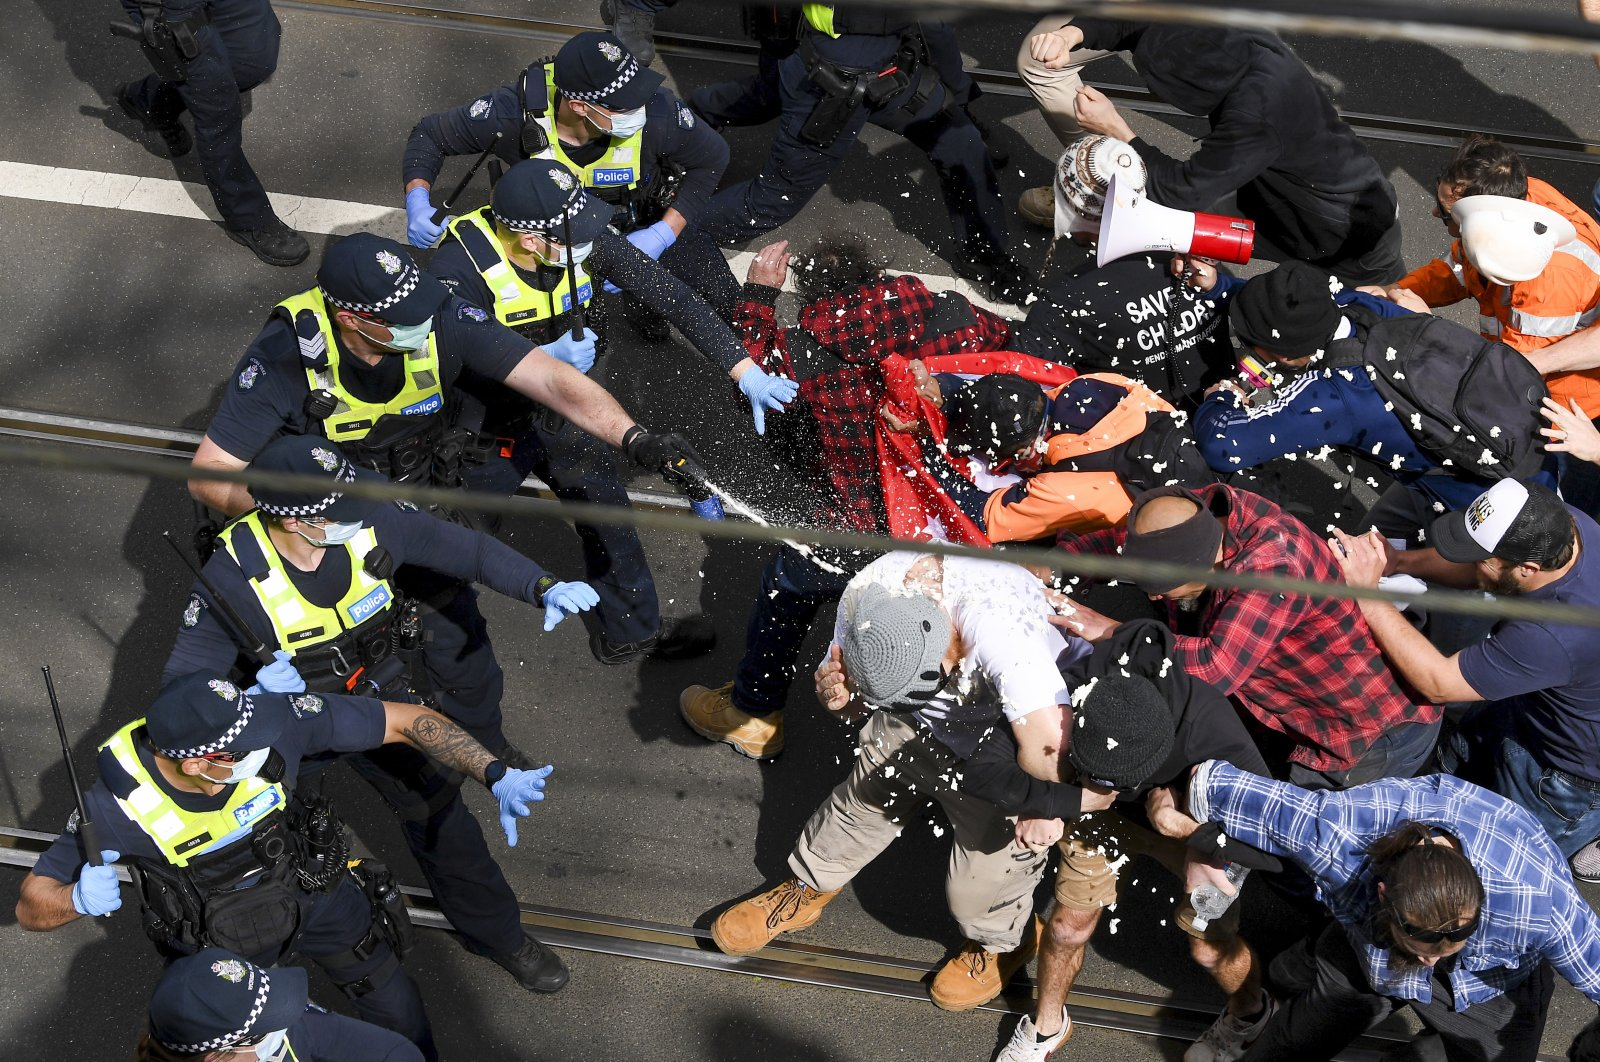 Victoria police fire pepper spray during a clash with protesters at a Rally for Freedom in Melbourne, Australia, Sept. 18, 2021. (AAP Image via AP)